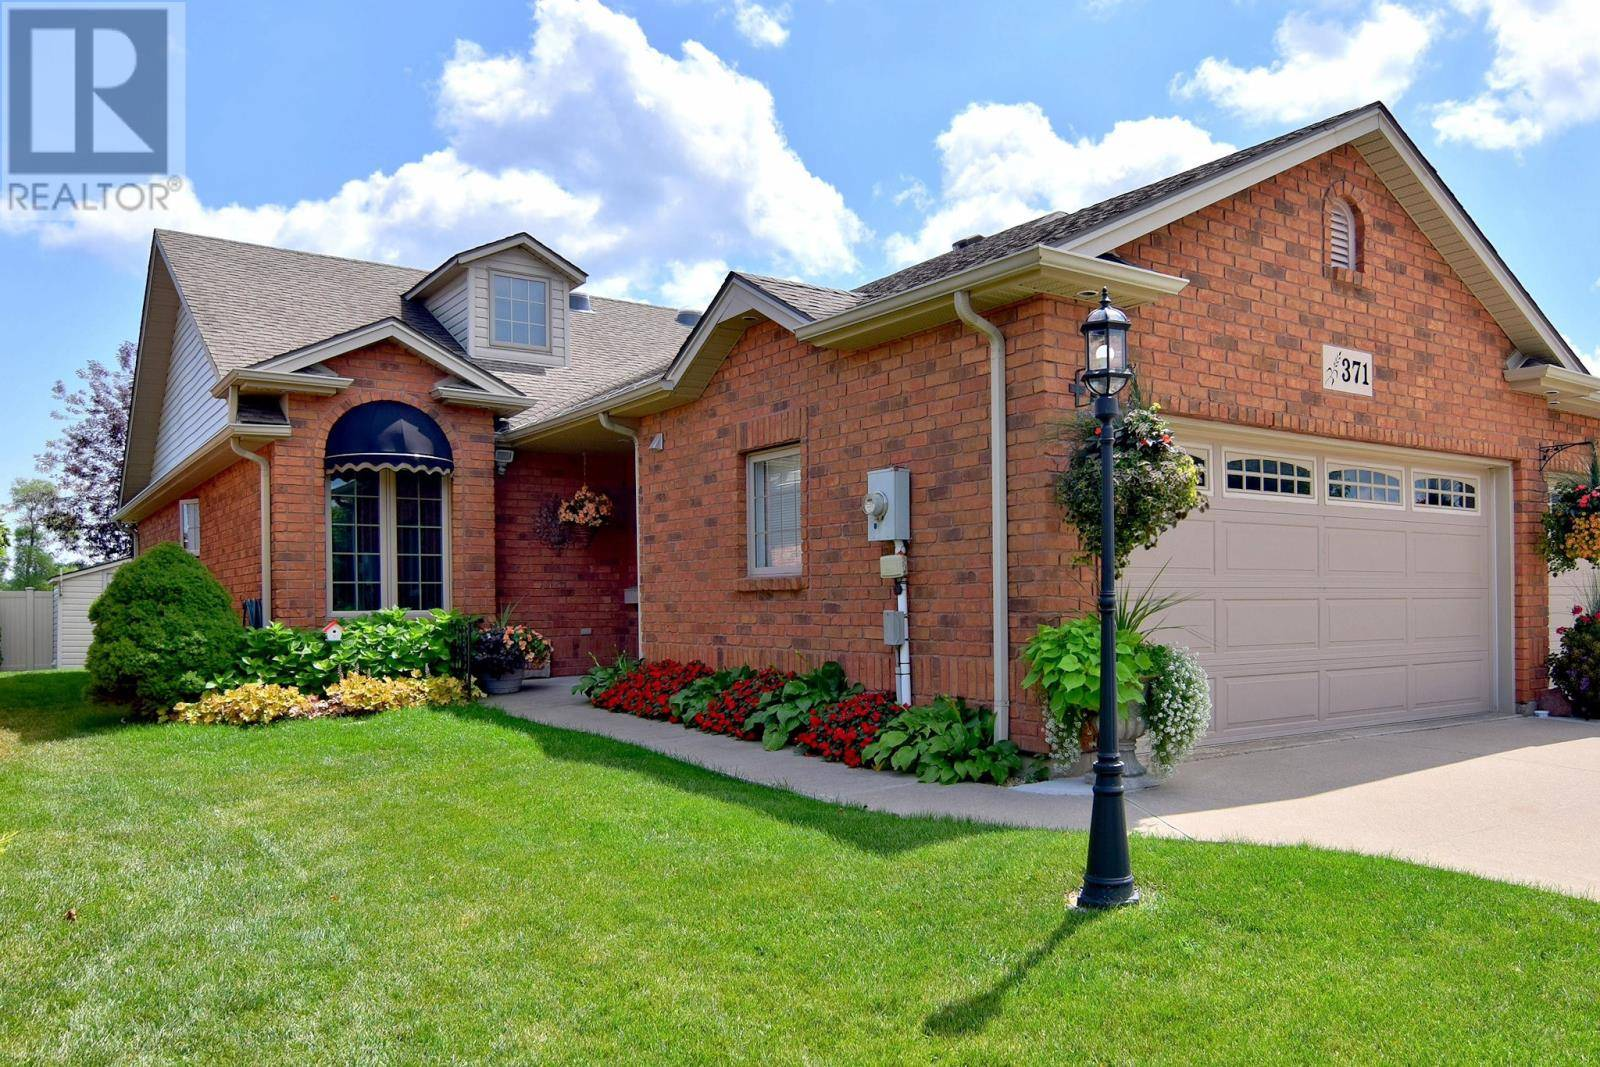 Townhouse for sale at 371 Lenore St Belle River Ontario - MLS: 19023309